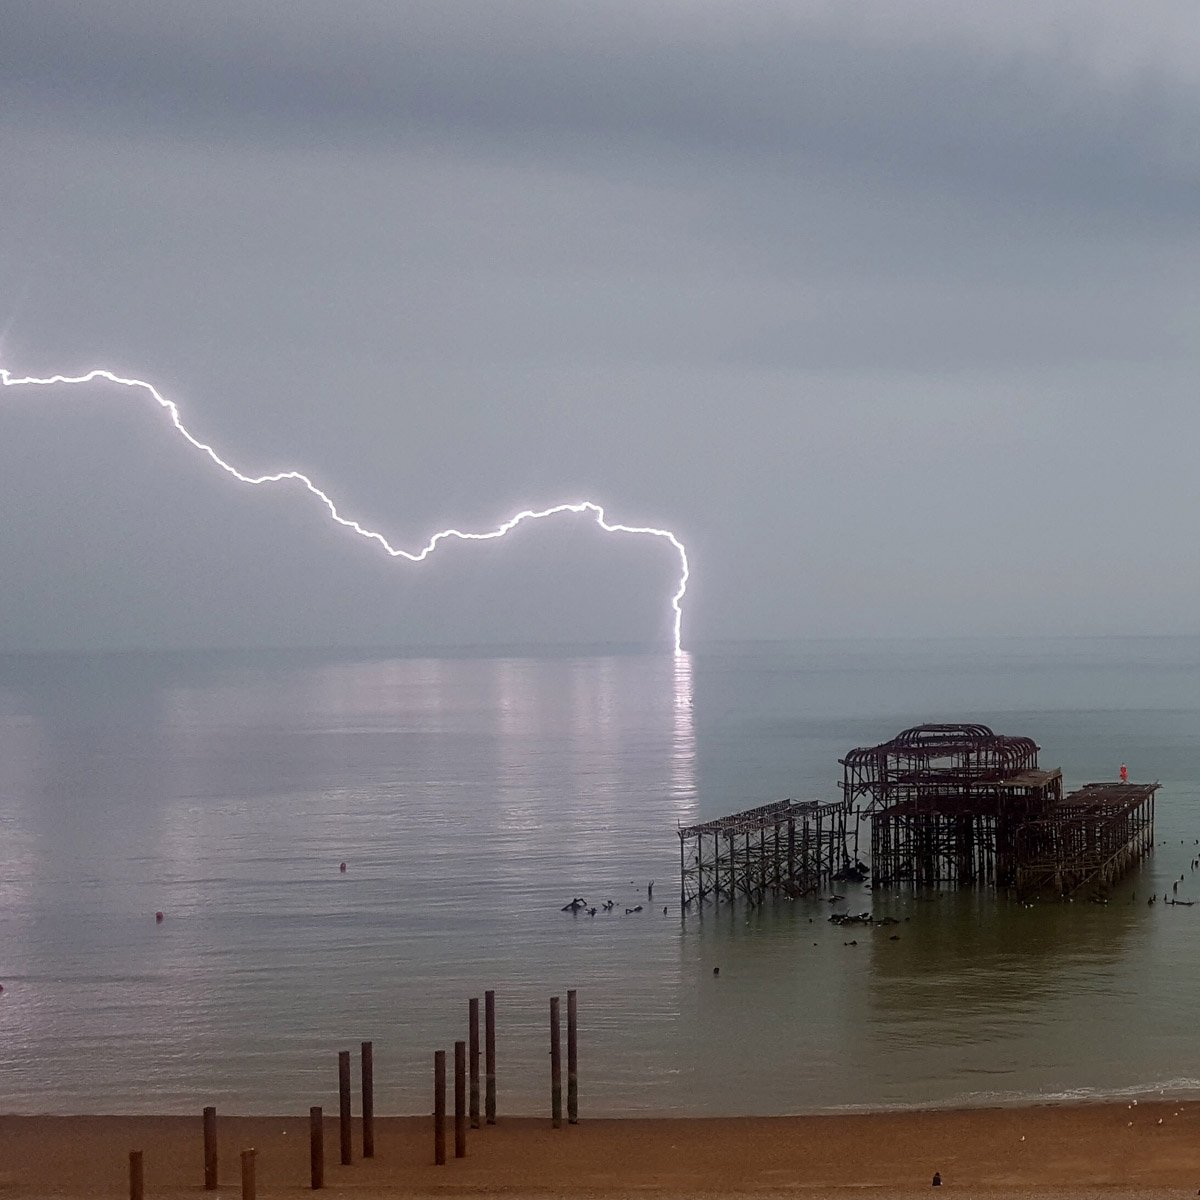 Great picture of last night's lightning close to #Brighton with @WestPierTrust by Damian Andrusiewicz. https://t.co/NzMYYRWEgY